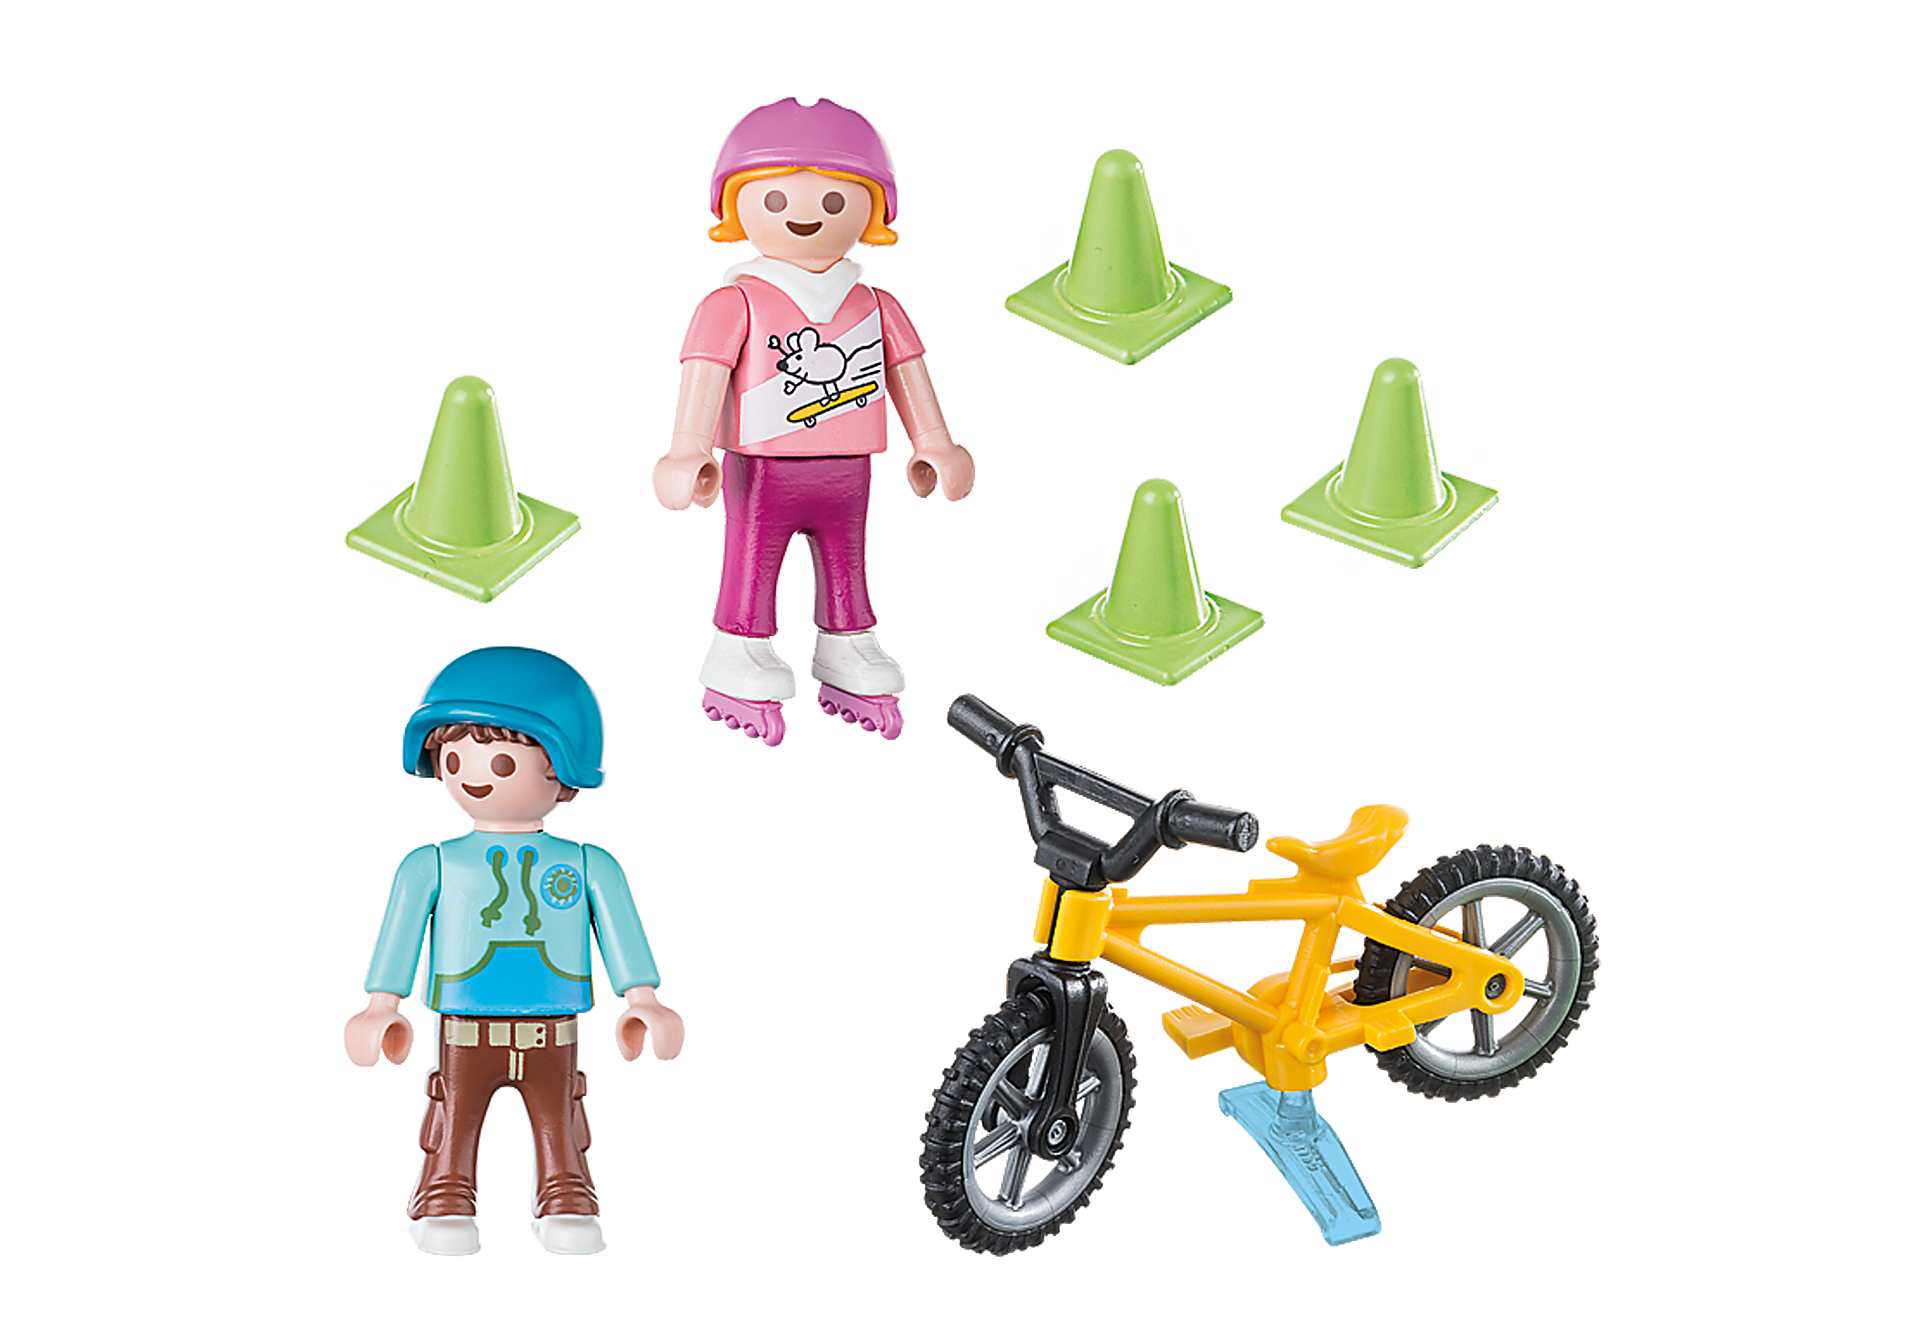 70061 Children with Skates and Bike zoom image3